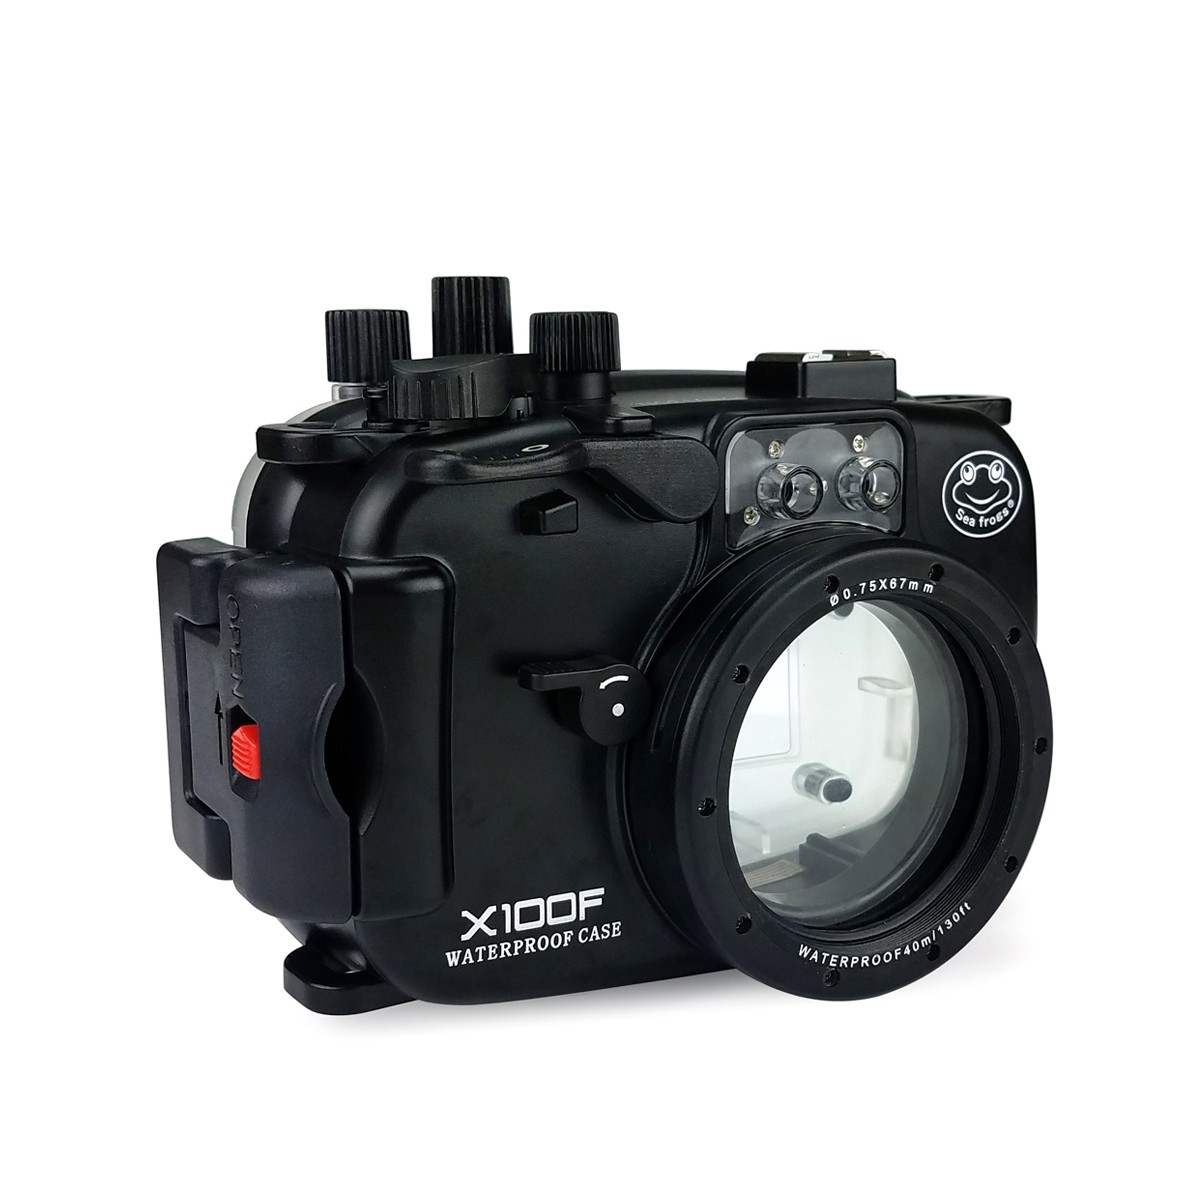 Seafrogs 40m/130ft Underwater Camera Housing Case For Fujifilm X100F Camera Action Camera Accessories Free Shipping